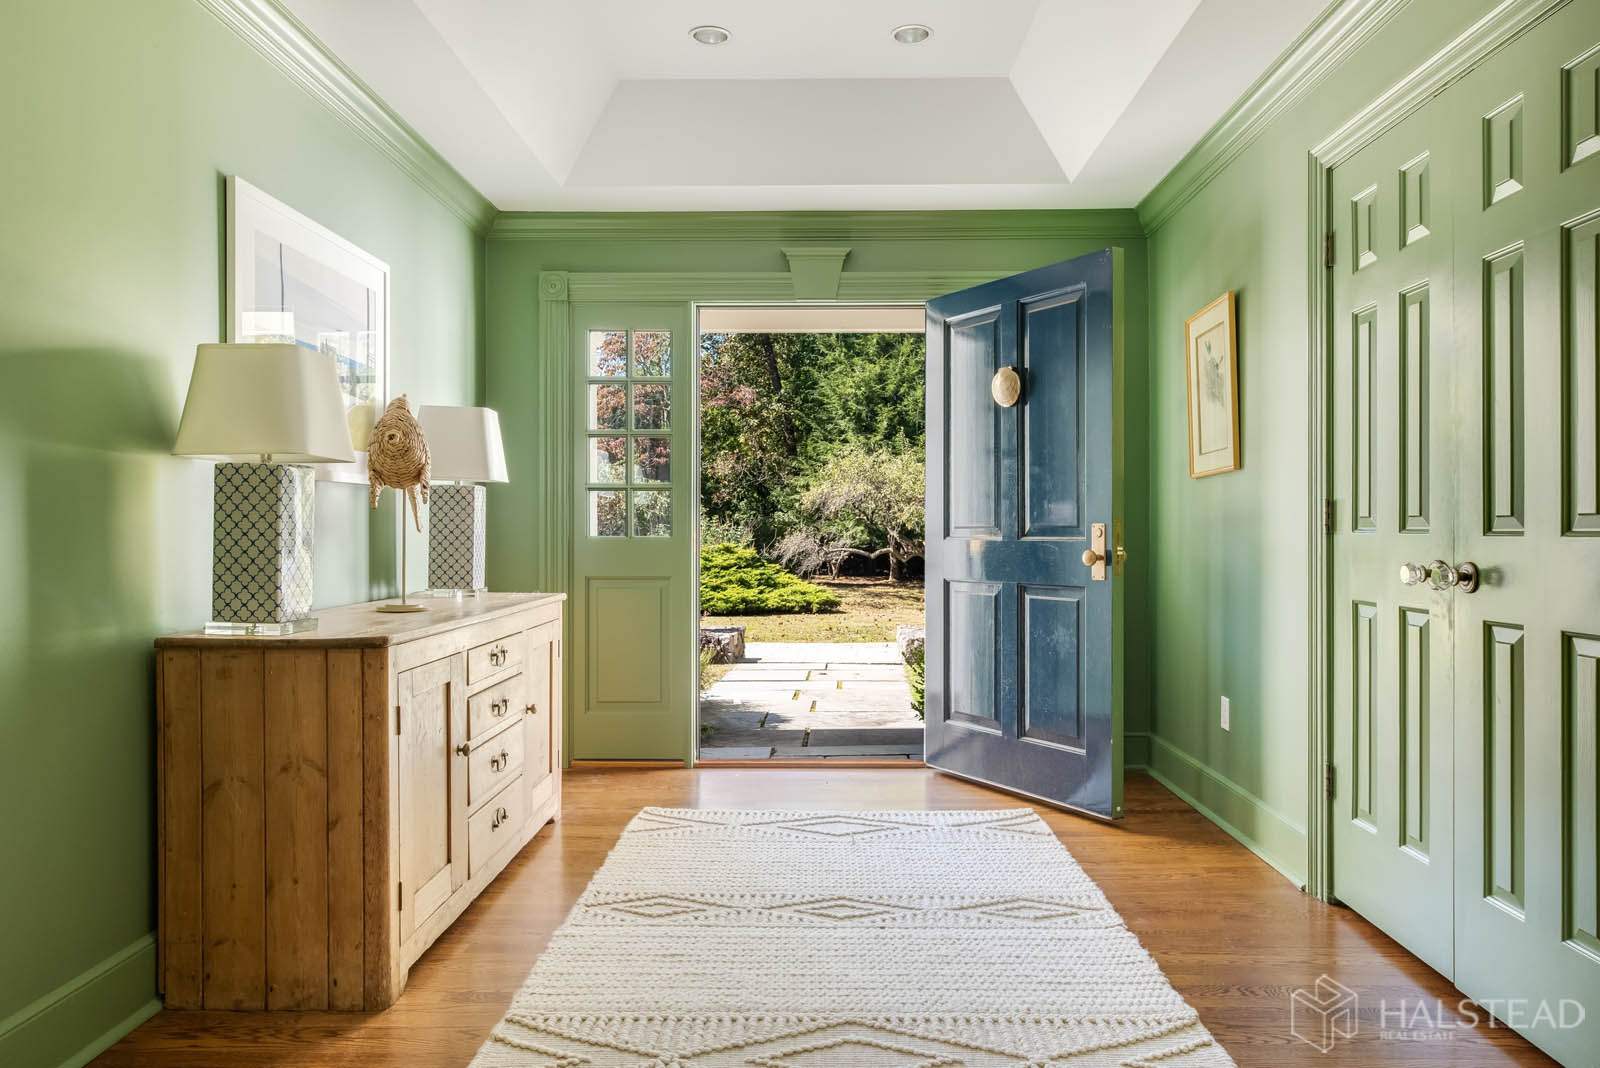 860 Hollow Tree Ridge Road, Darien, Connecticut, 06820, $1,675,000, Property For Sale, Halstead Real Estate, Photo 5